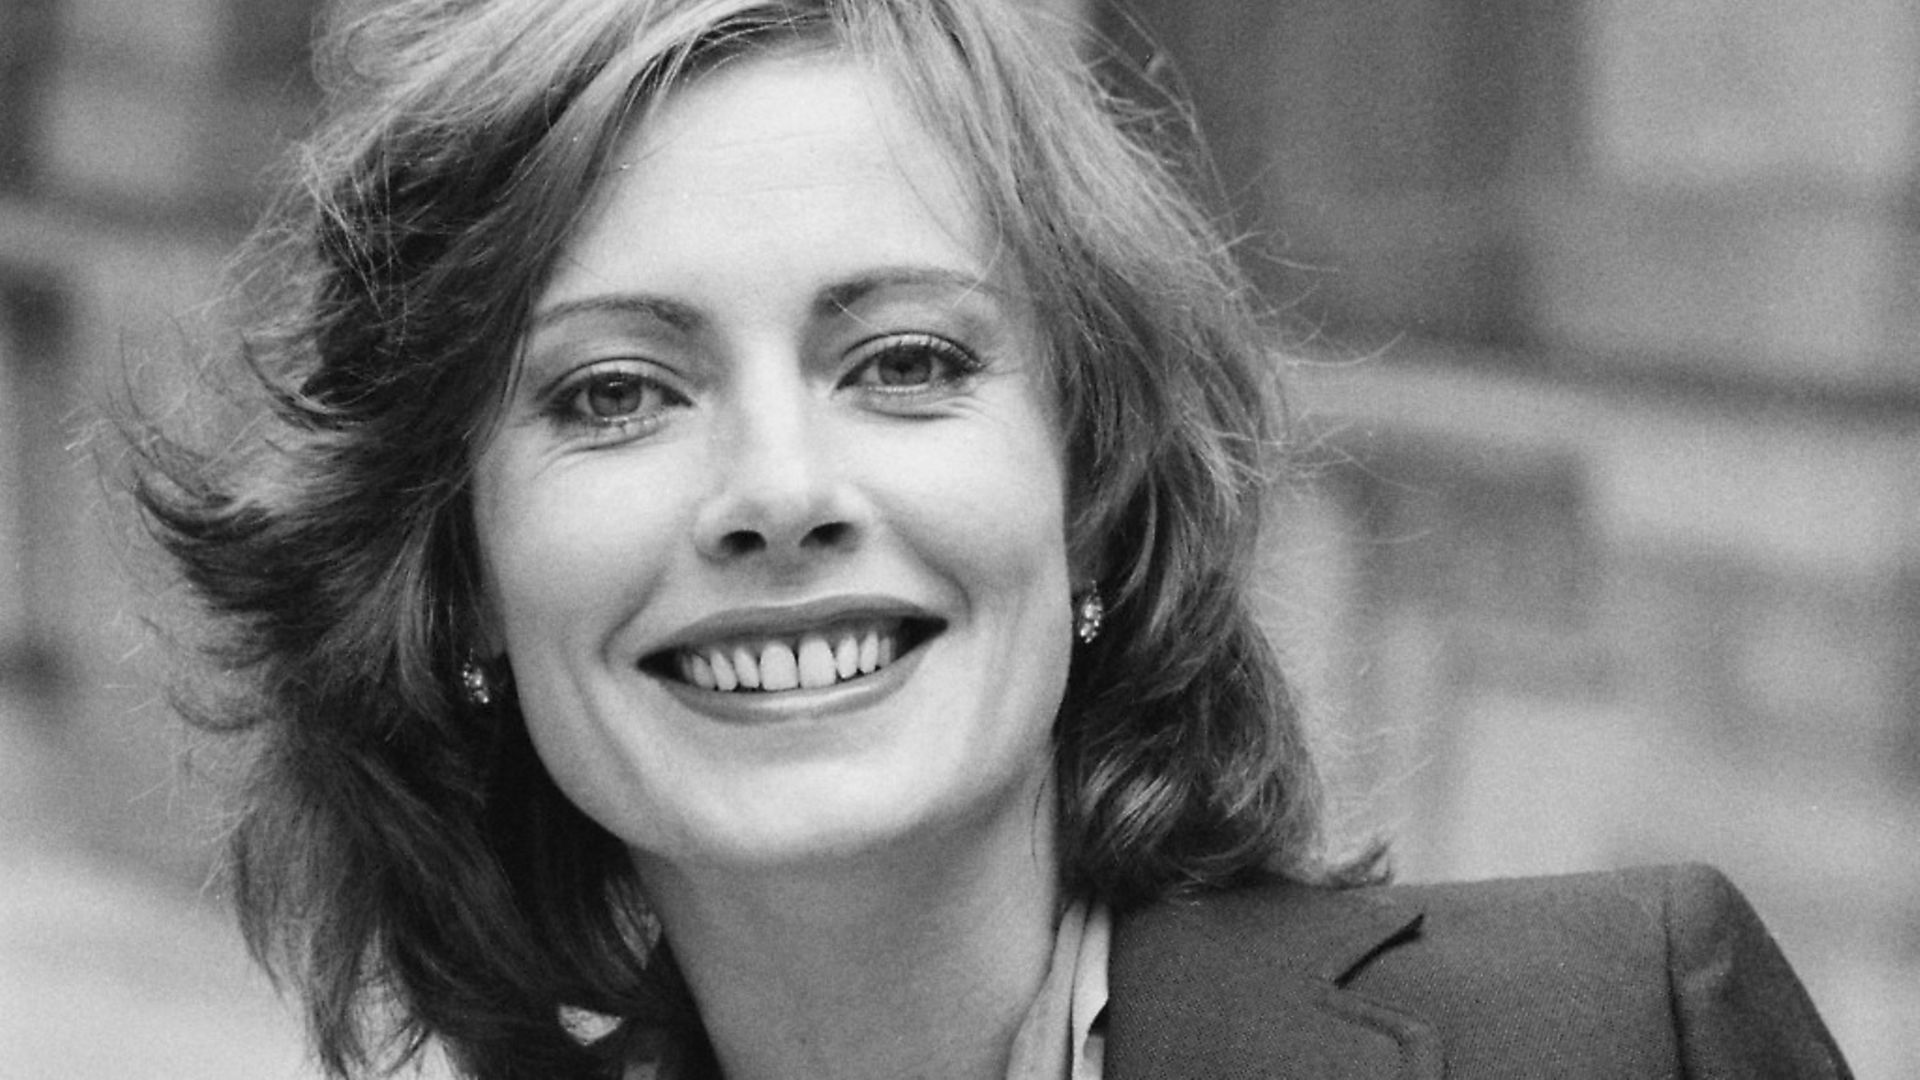 Russian-American actress and author Victoria Fyodorova (1946 - 2012), UK, 28th September 1979. (Photo by Evening Standard/Hulton Archive/Getty Images) - Credit: Getty Images